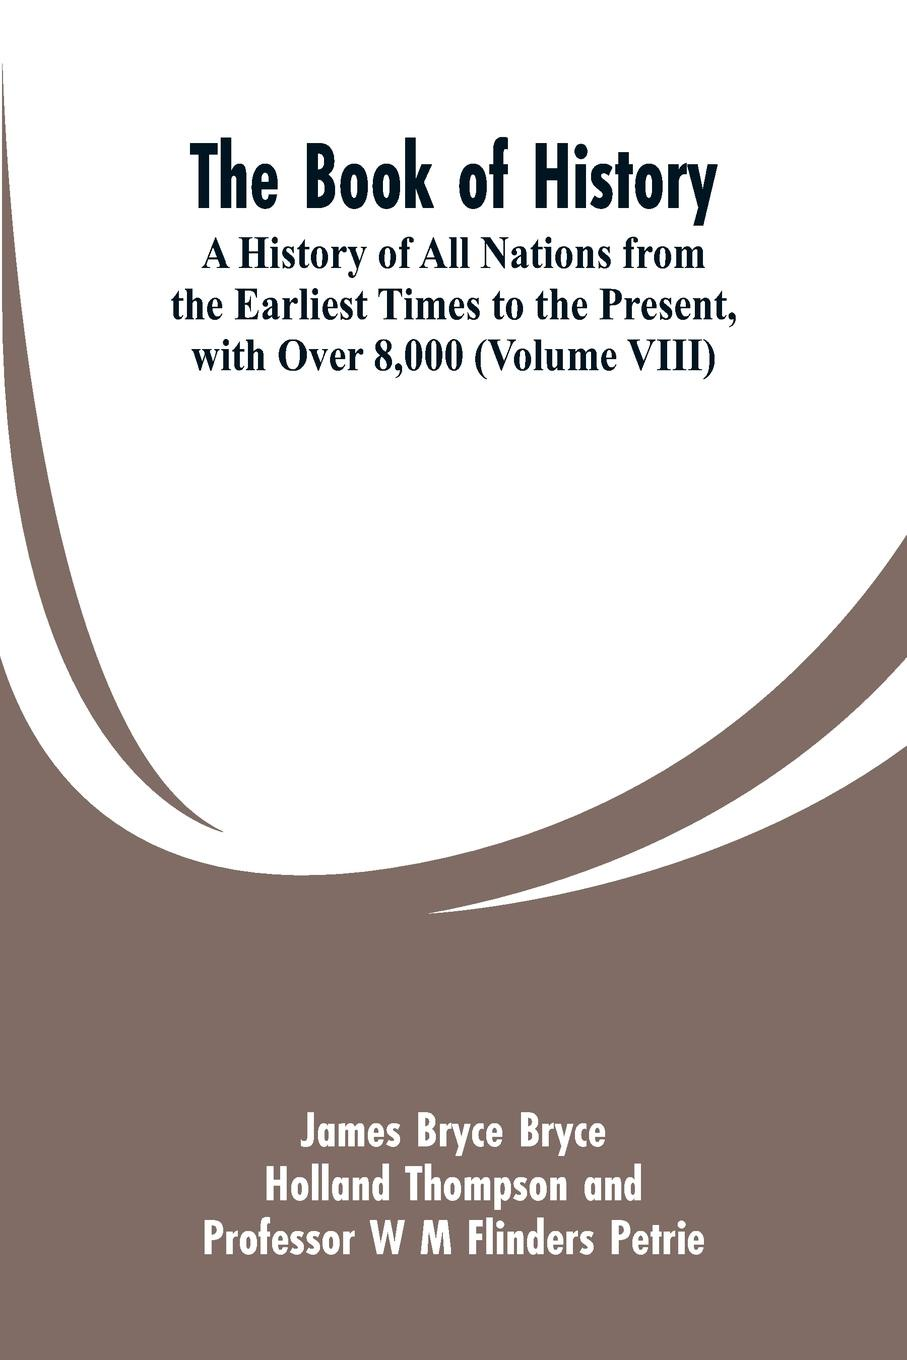 лучшая цена James Bryce, Holland Thompson, W M Flinders Petrie The Book of History. A History of All Nations from the Earliest Times to the Present, with Over 8,000 (Volume VIII)